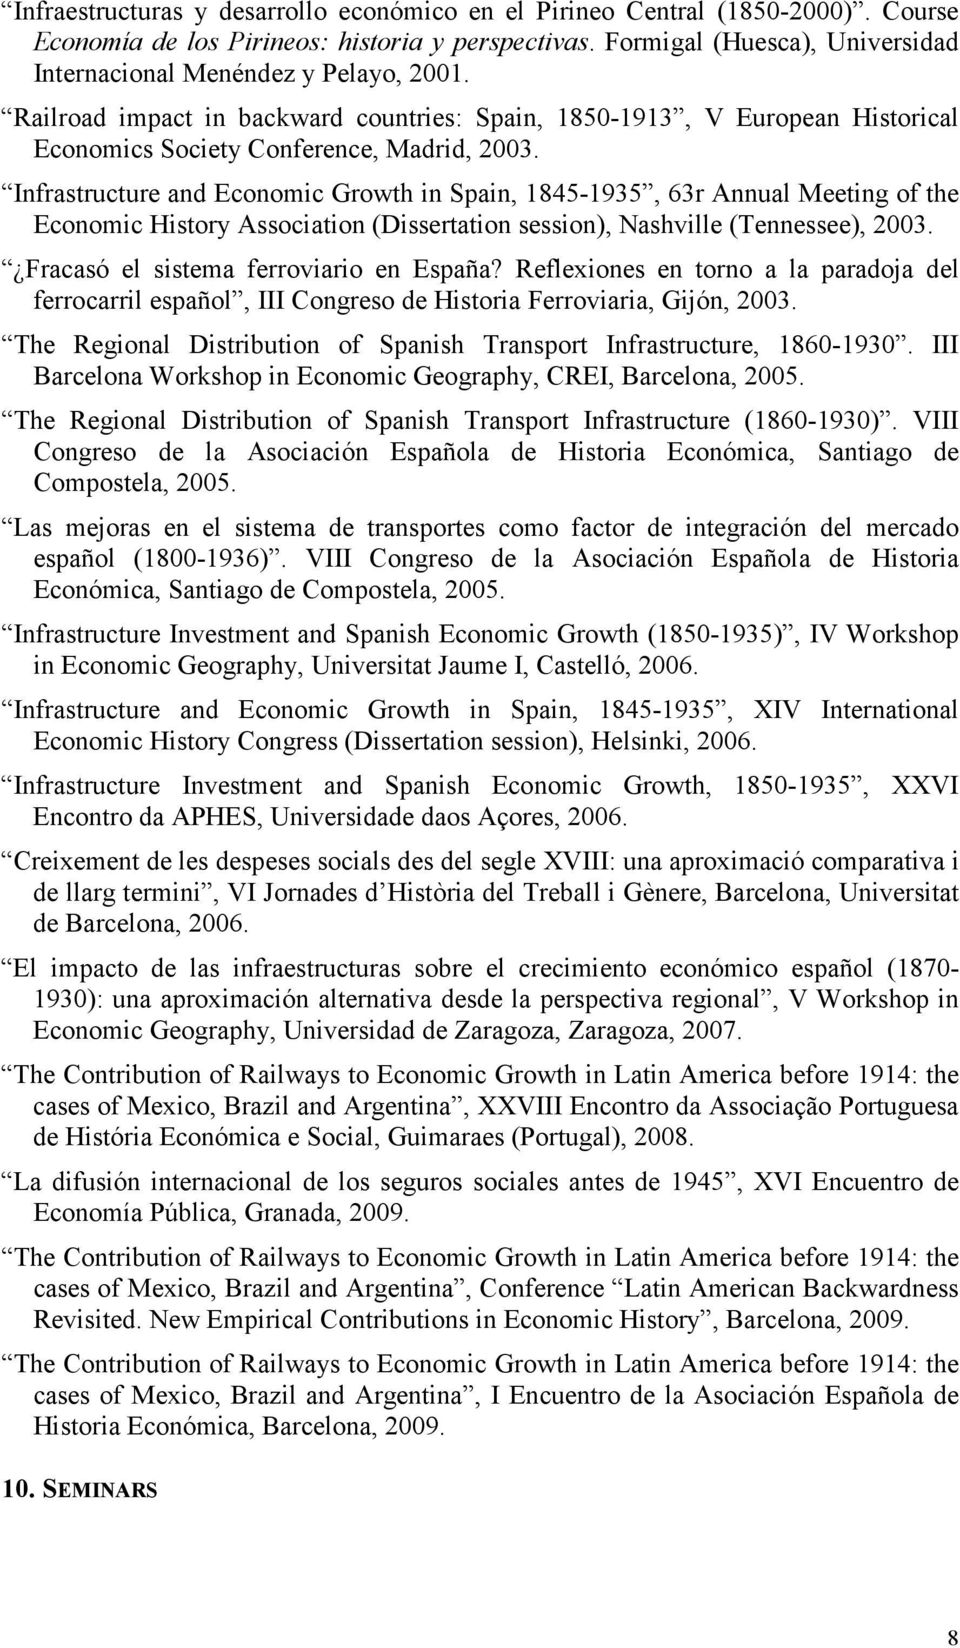 Infrastructure and Economic Growth in Spain, 1845-1935, 63r Annual Meeting of the Economic History Association (Dissertation session), Nashville (Tennessee), 2003.